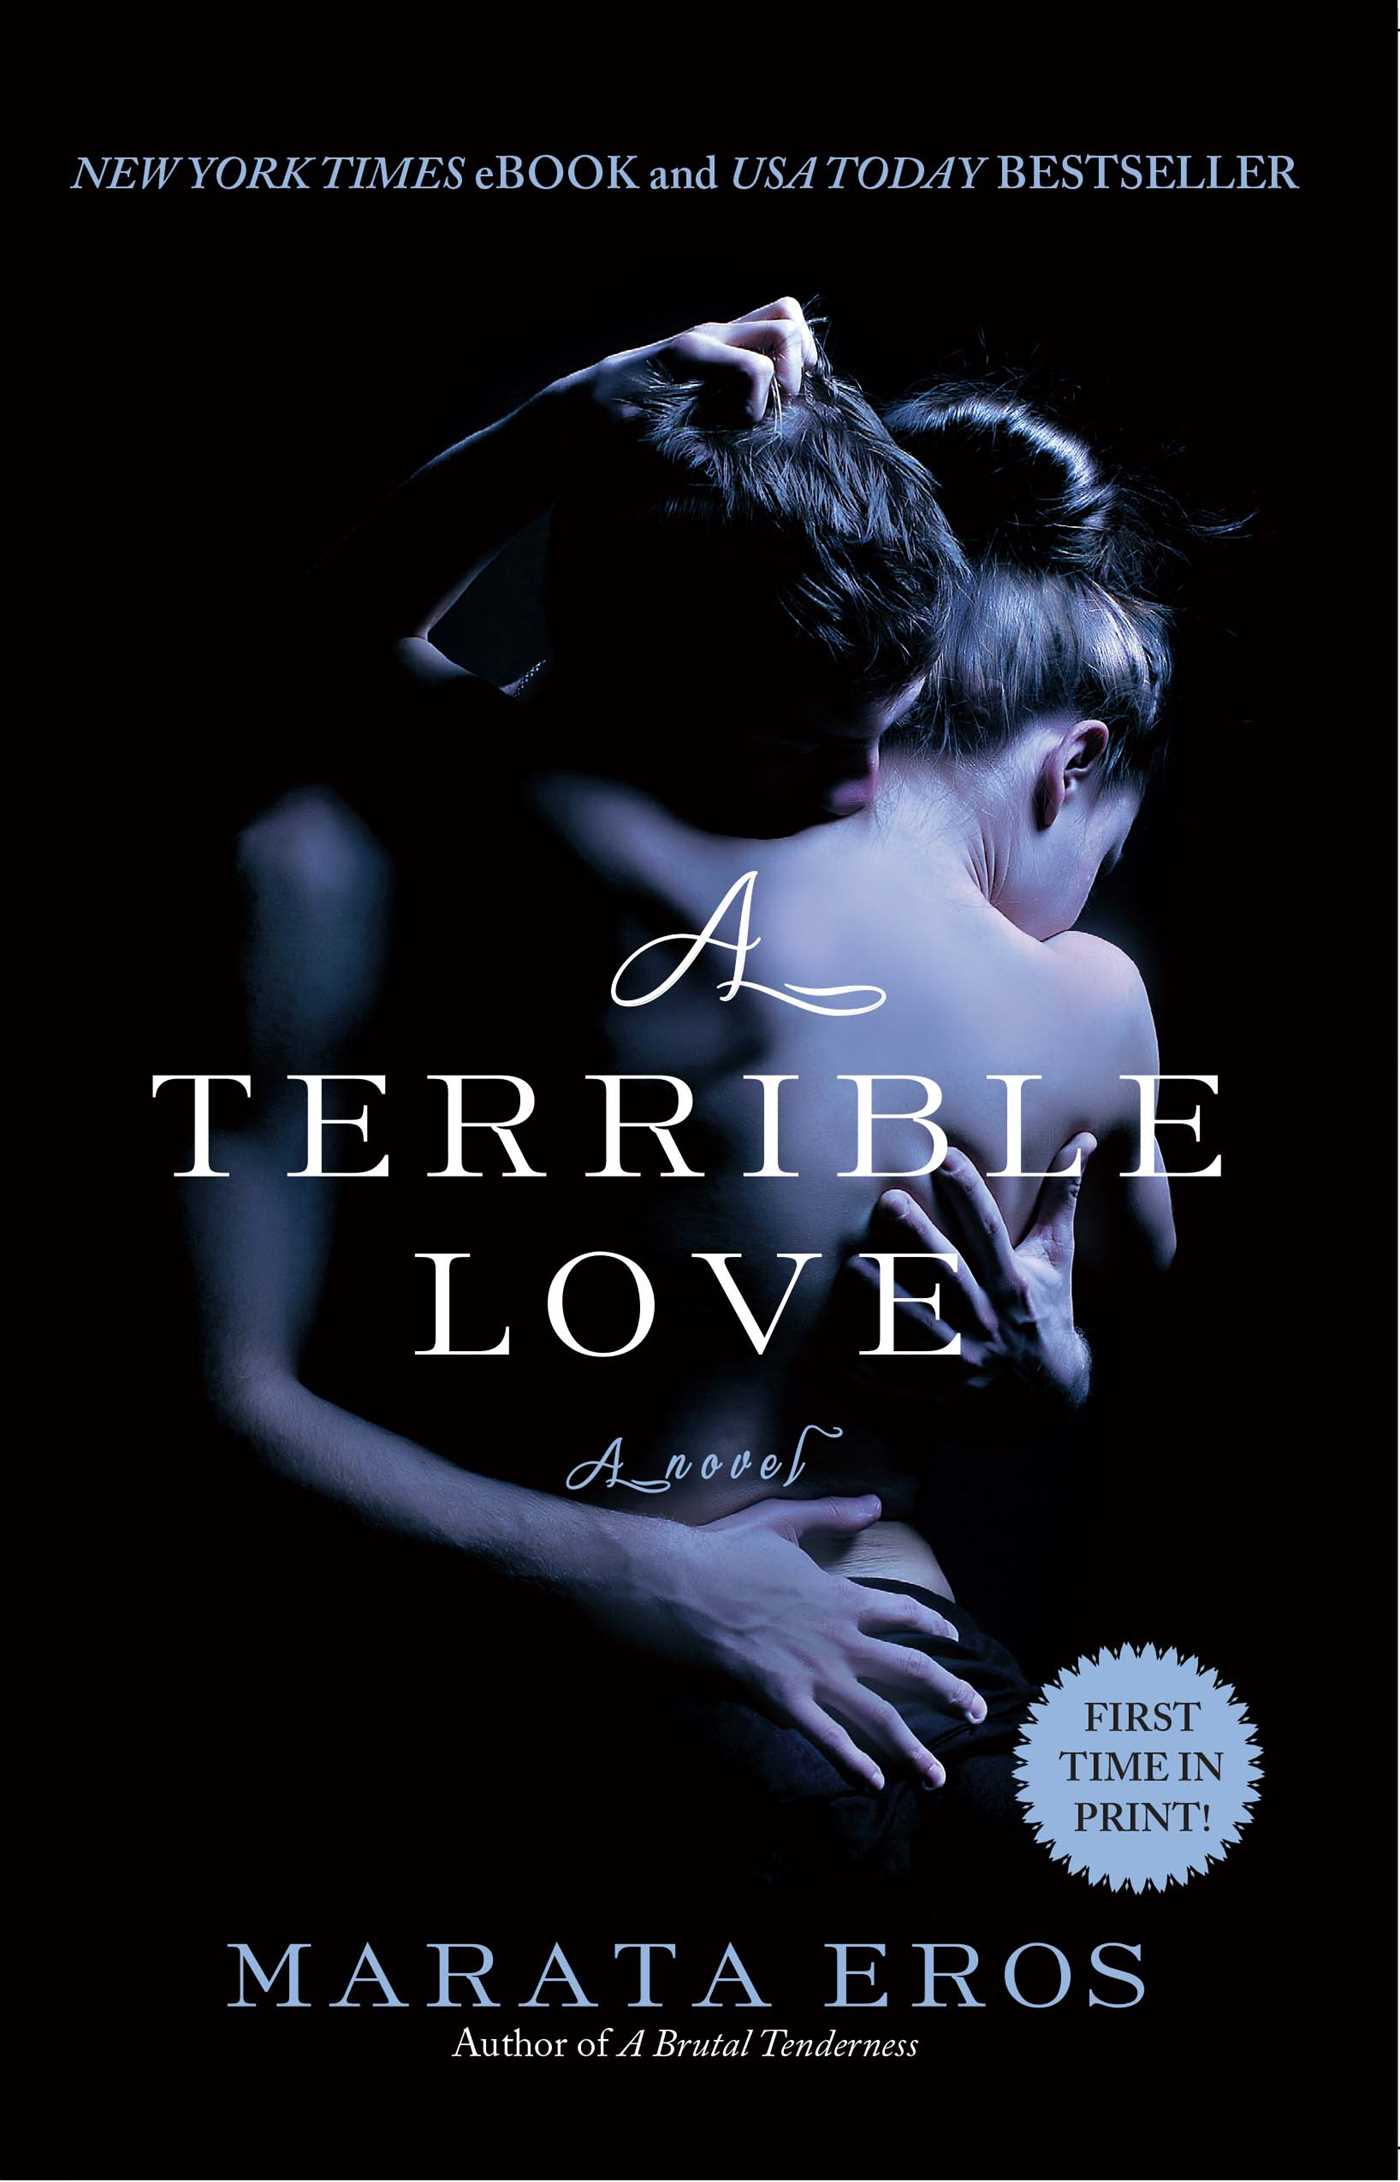 A-terrible-love-9781476752198_hr